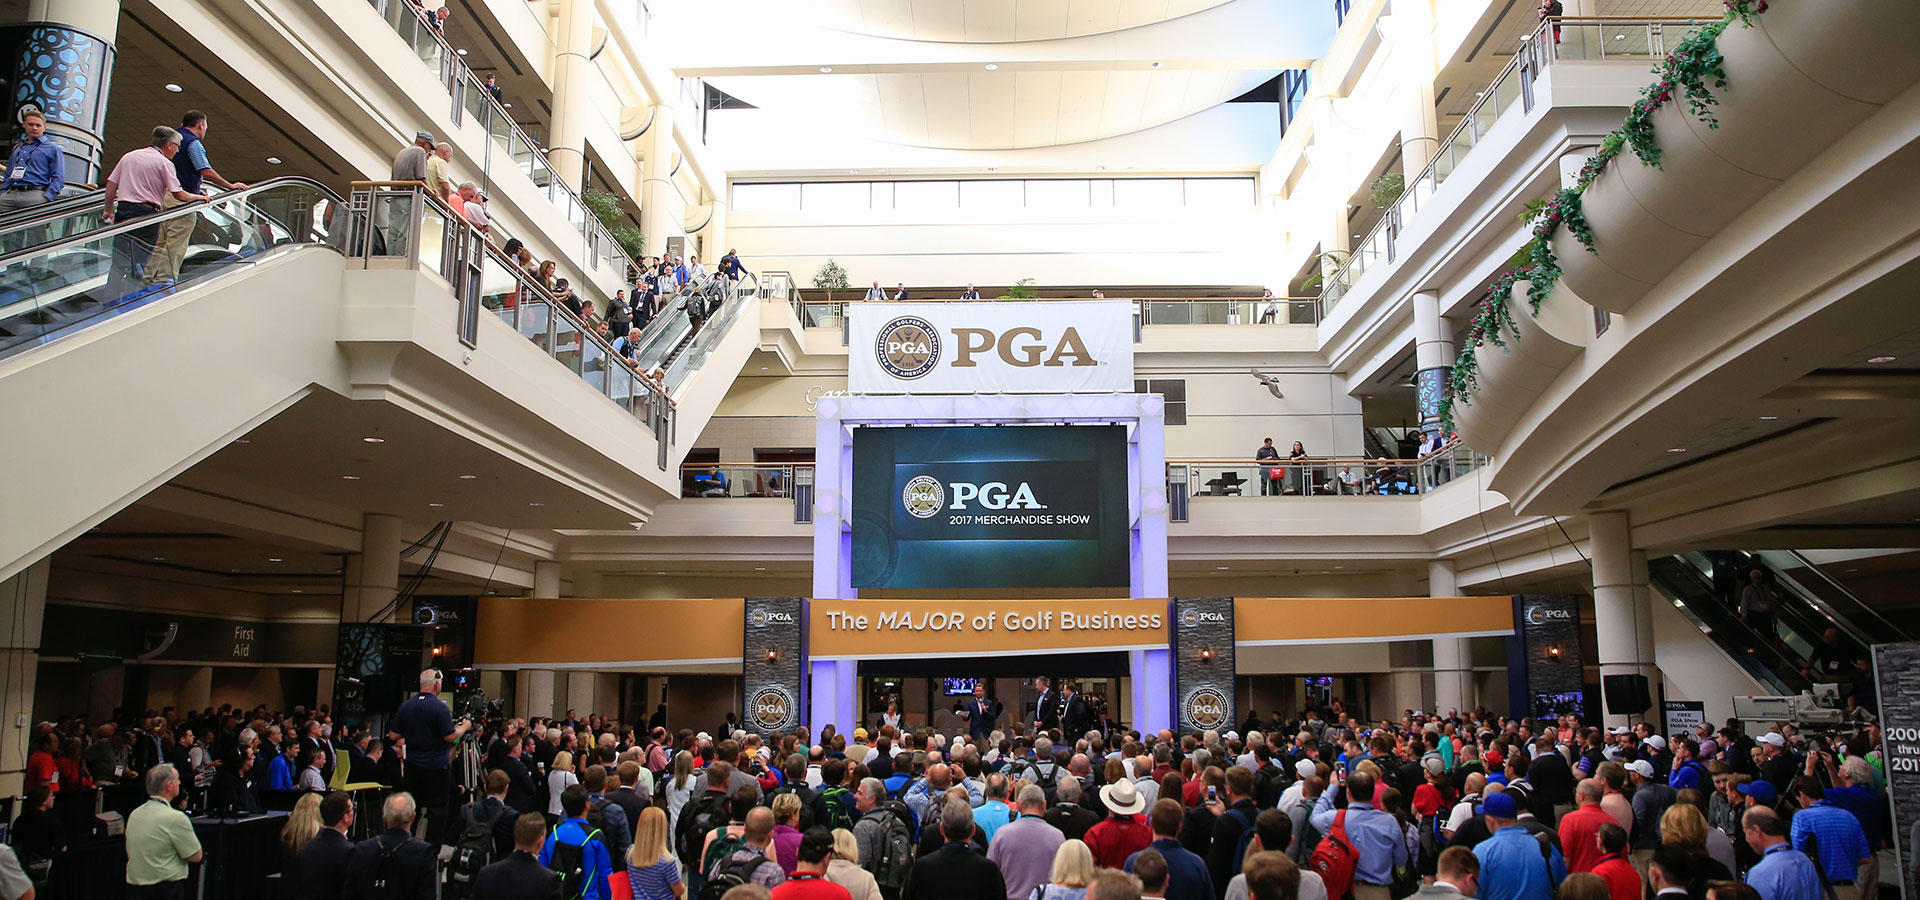 Live stream the th PGA Championship with the official PGA Championship app. Watch the action from Bellerive across all your screens as the world's greatest players chase the season's final major in St. Louis from August , Price: 0.